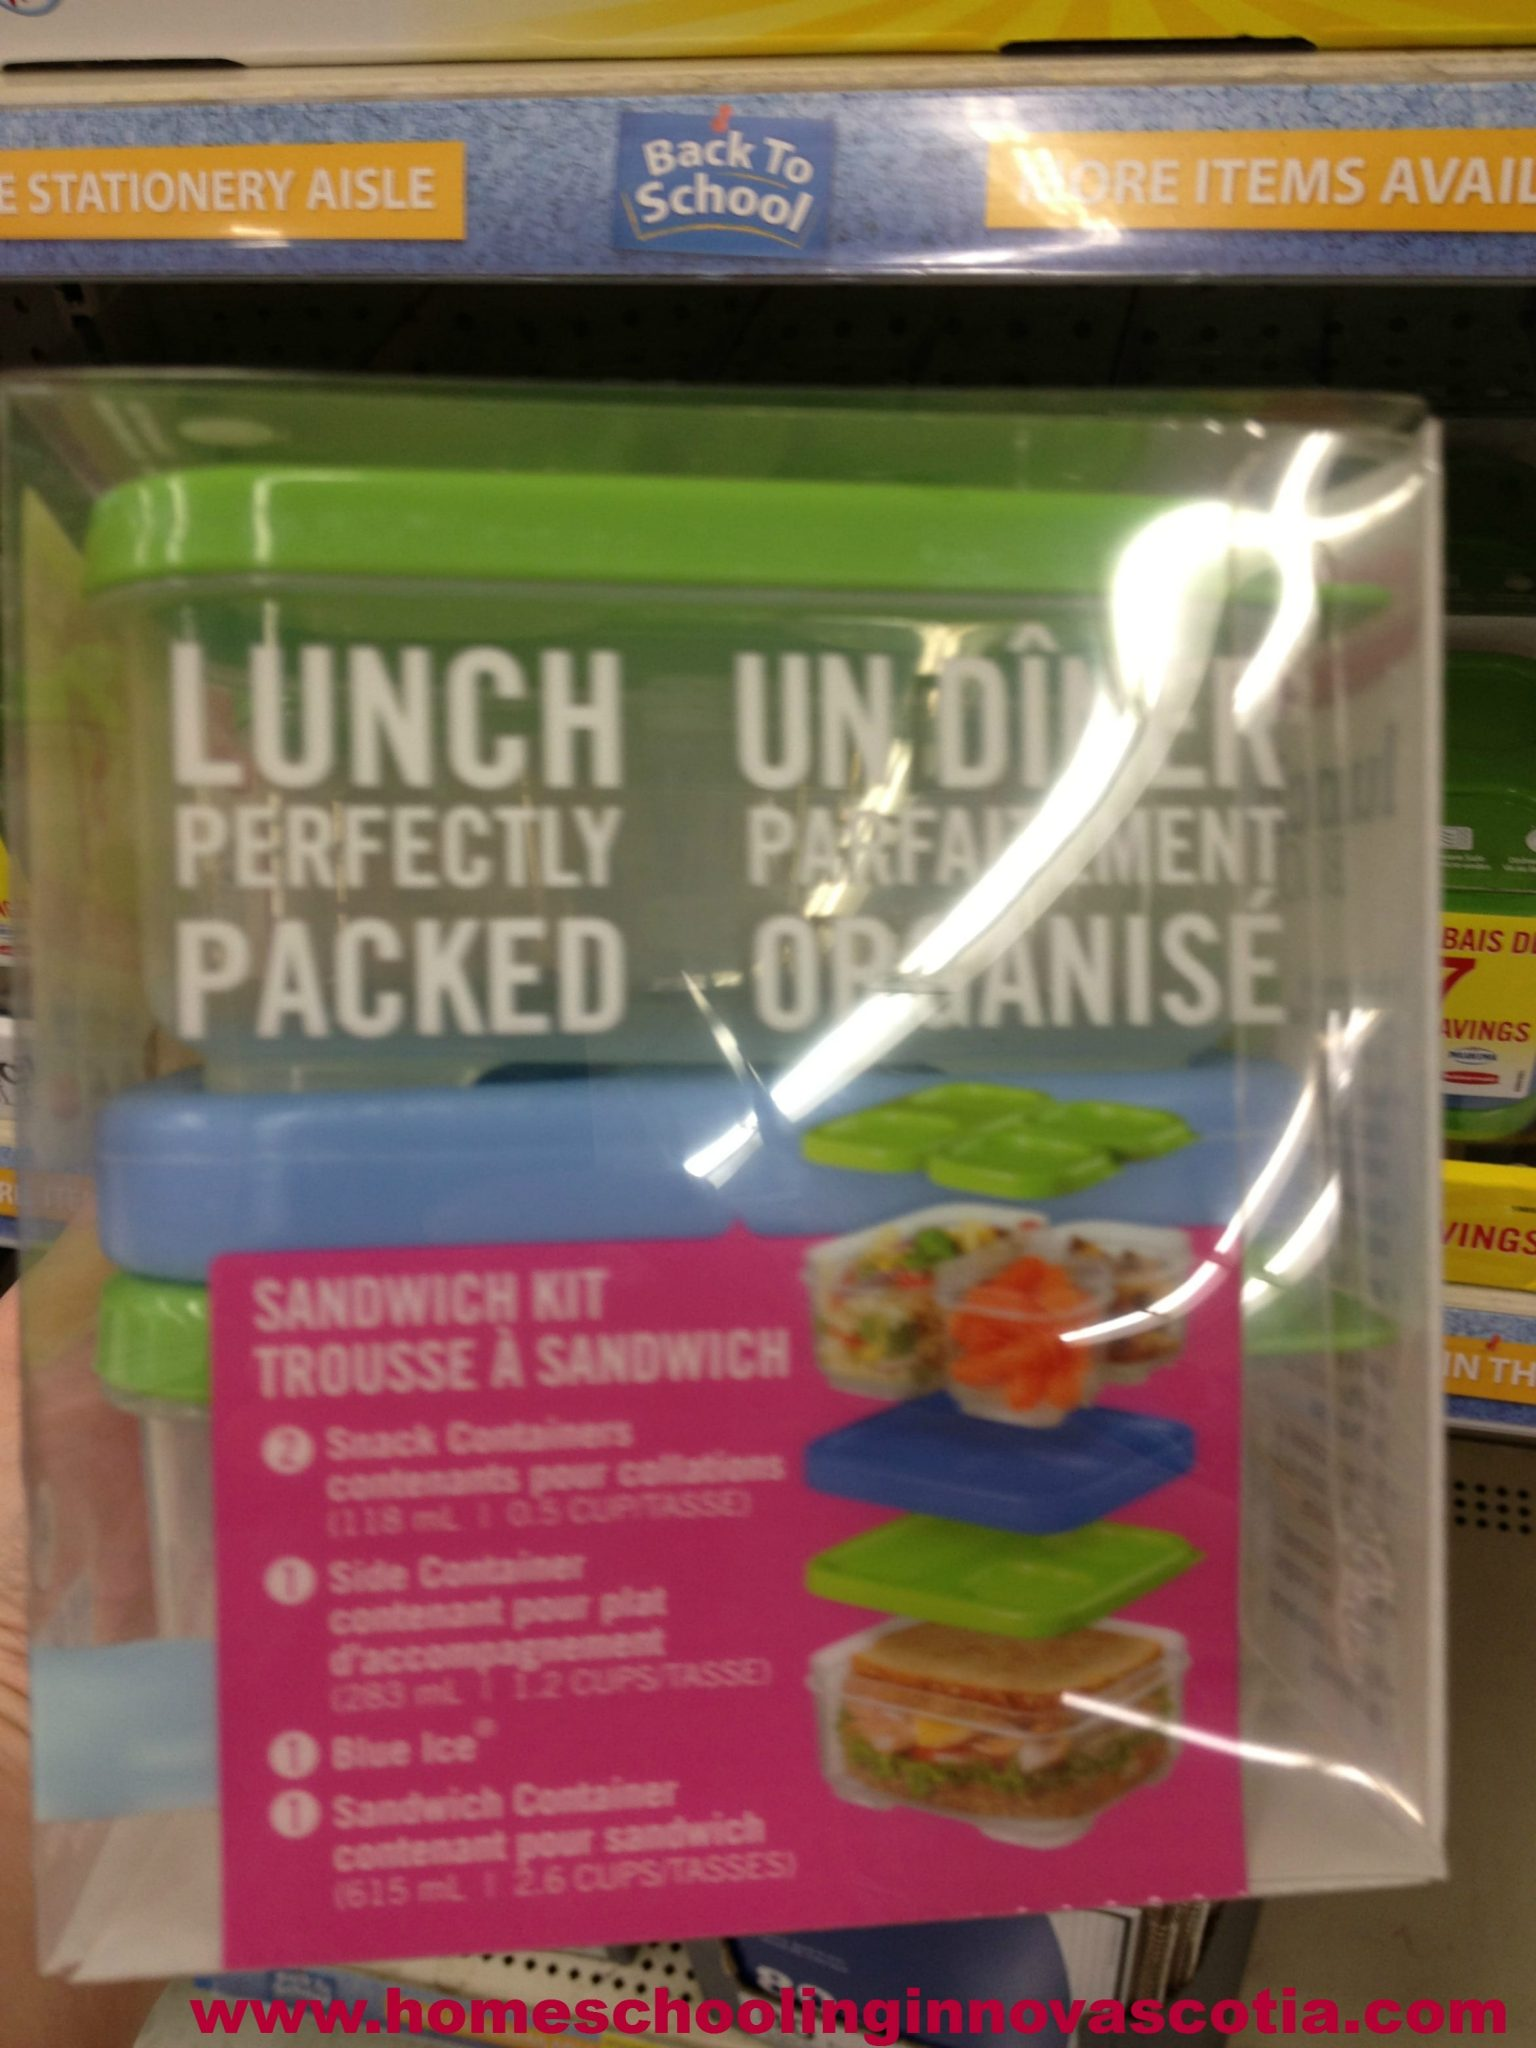 Cool rubbermaid lunchbag kit #shop